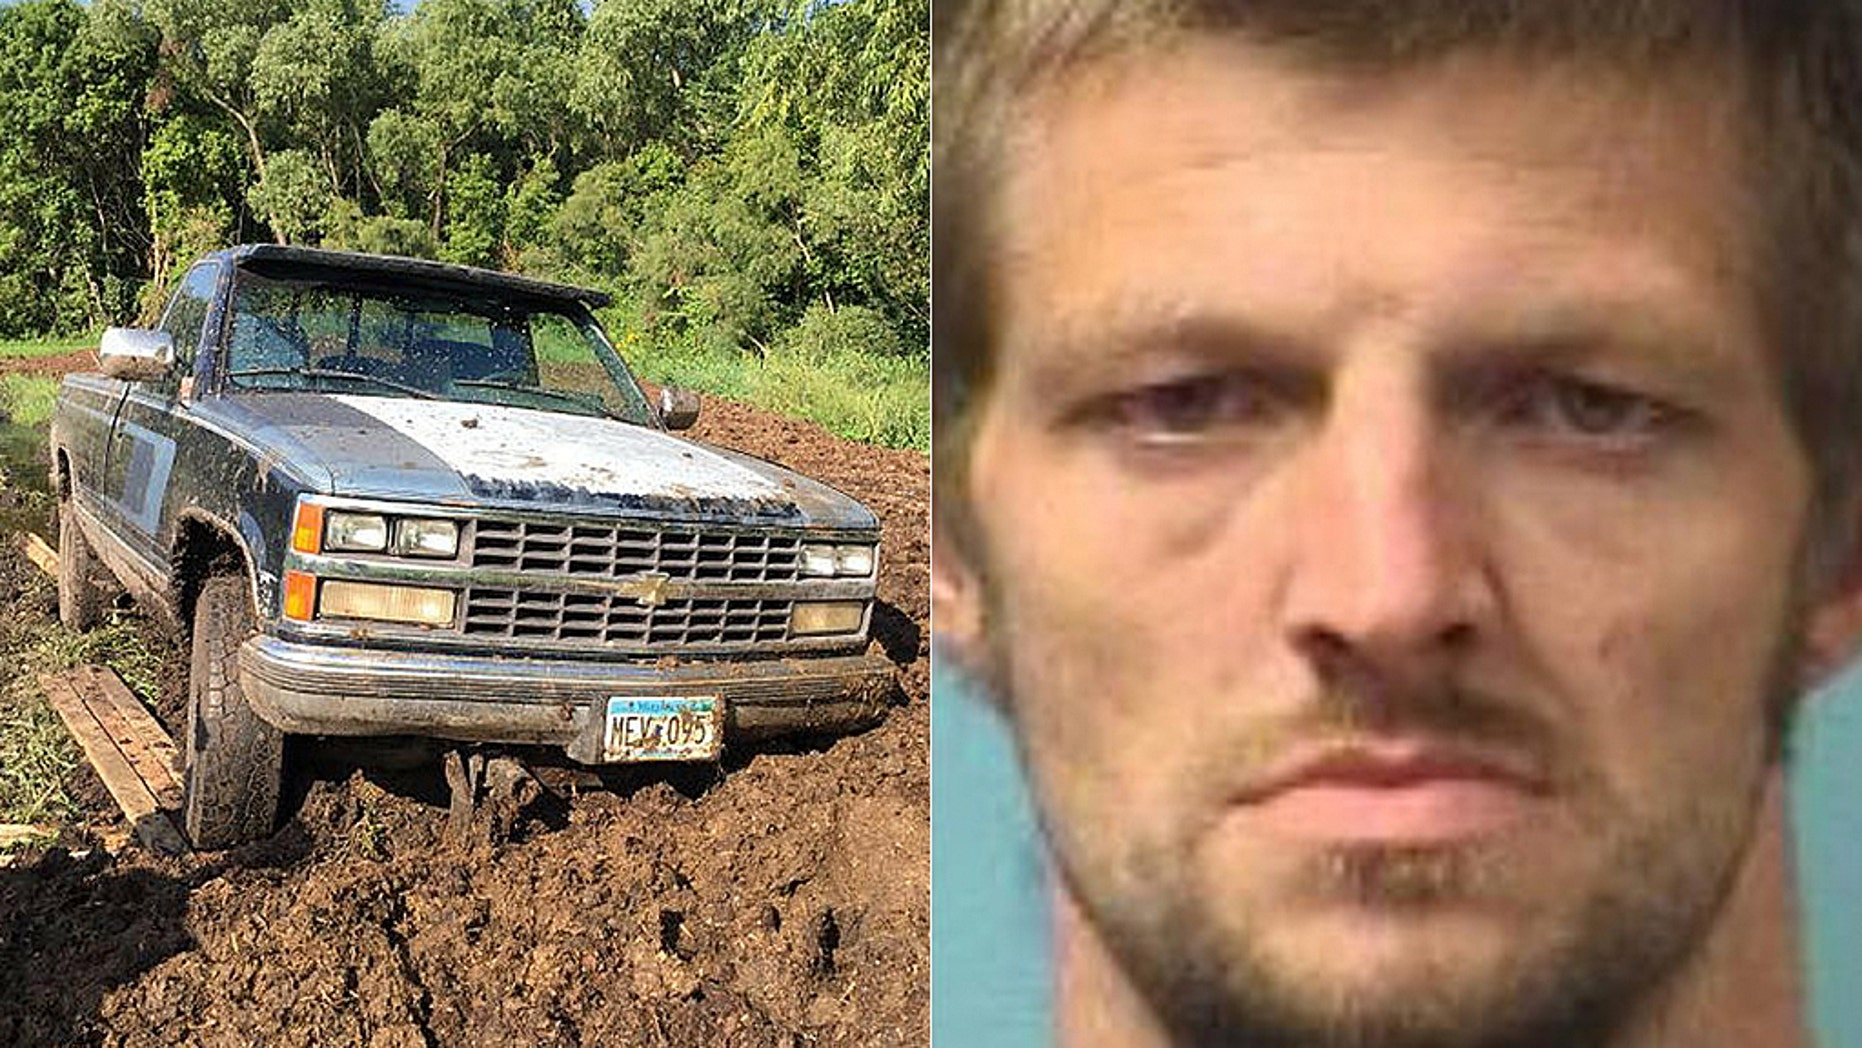 Matthew Bloomquist, 29, was nabbed on a burglary charge after he got stuck in a manure pile during the getaway, investigators said.